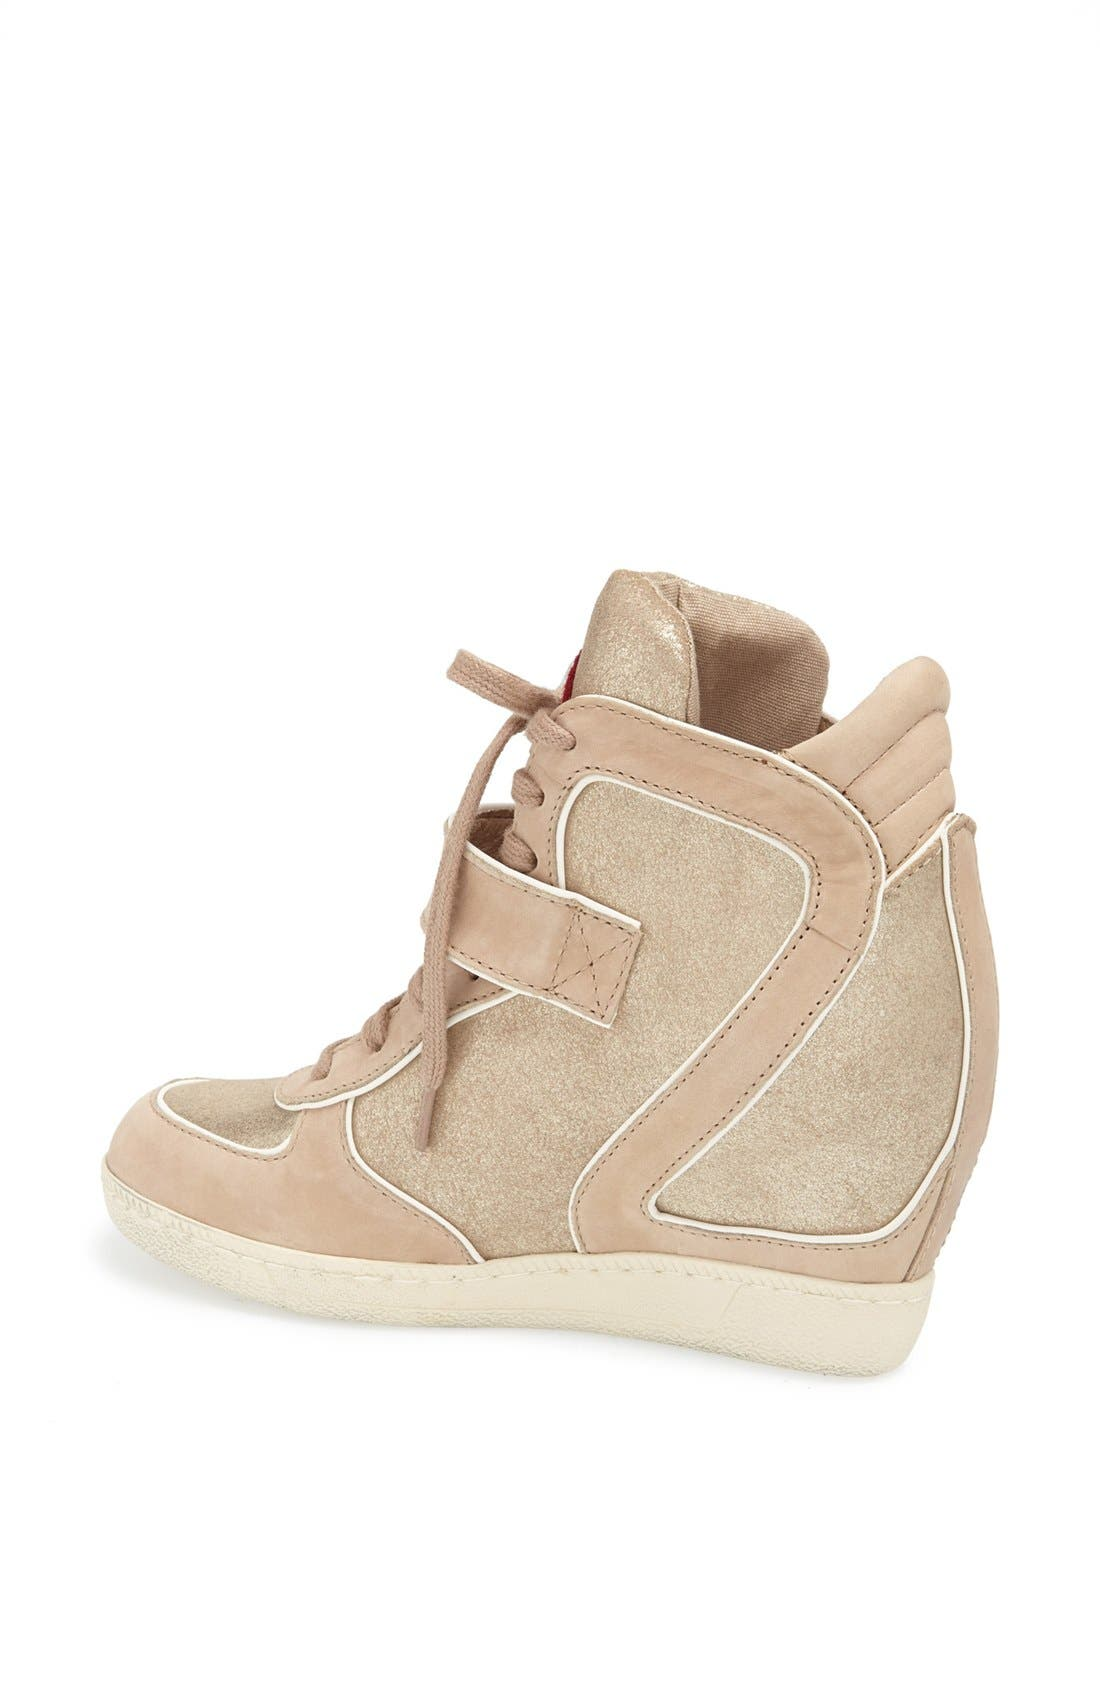 Alternate Image 2  - Ash 'Brendy' Hidden Wedge Suede & Metallic Leather Sneaker